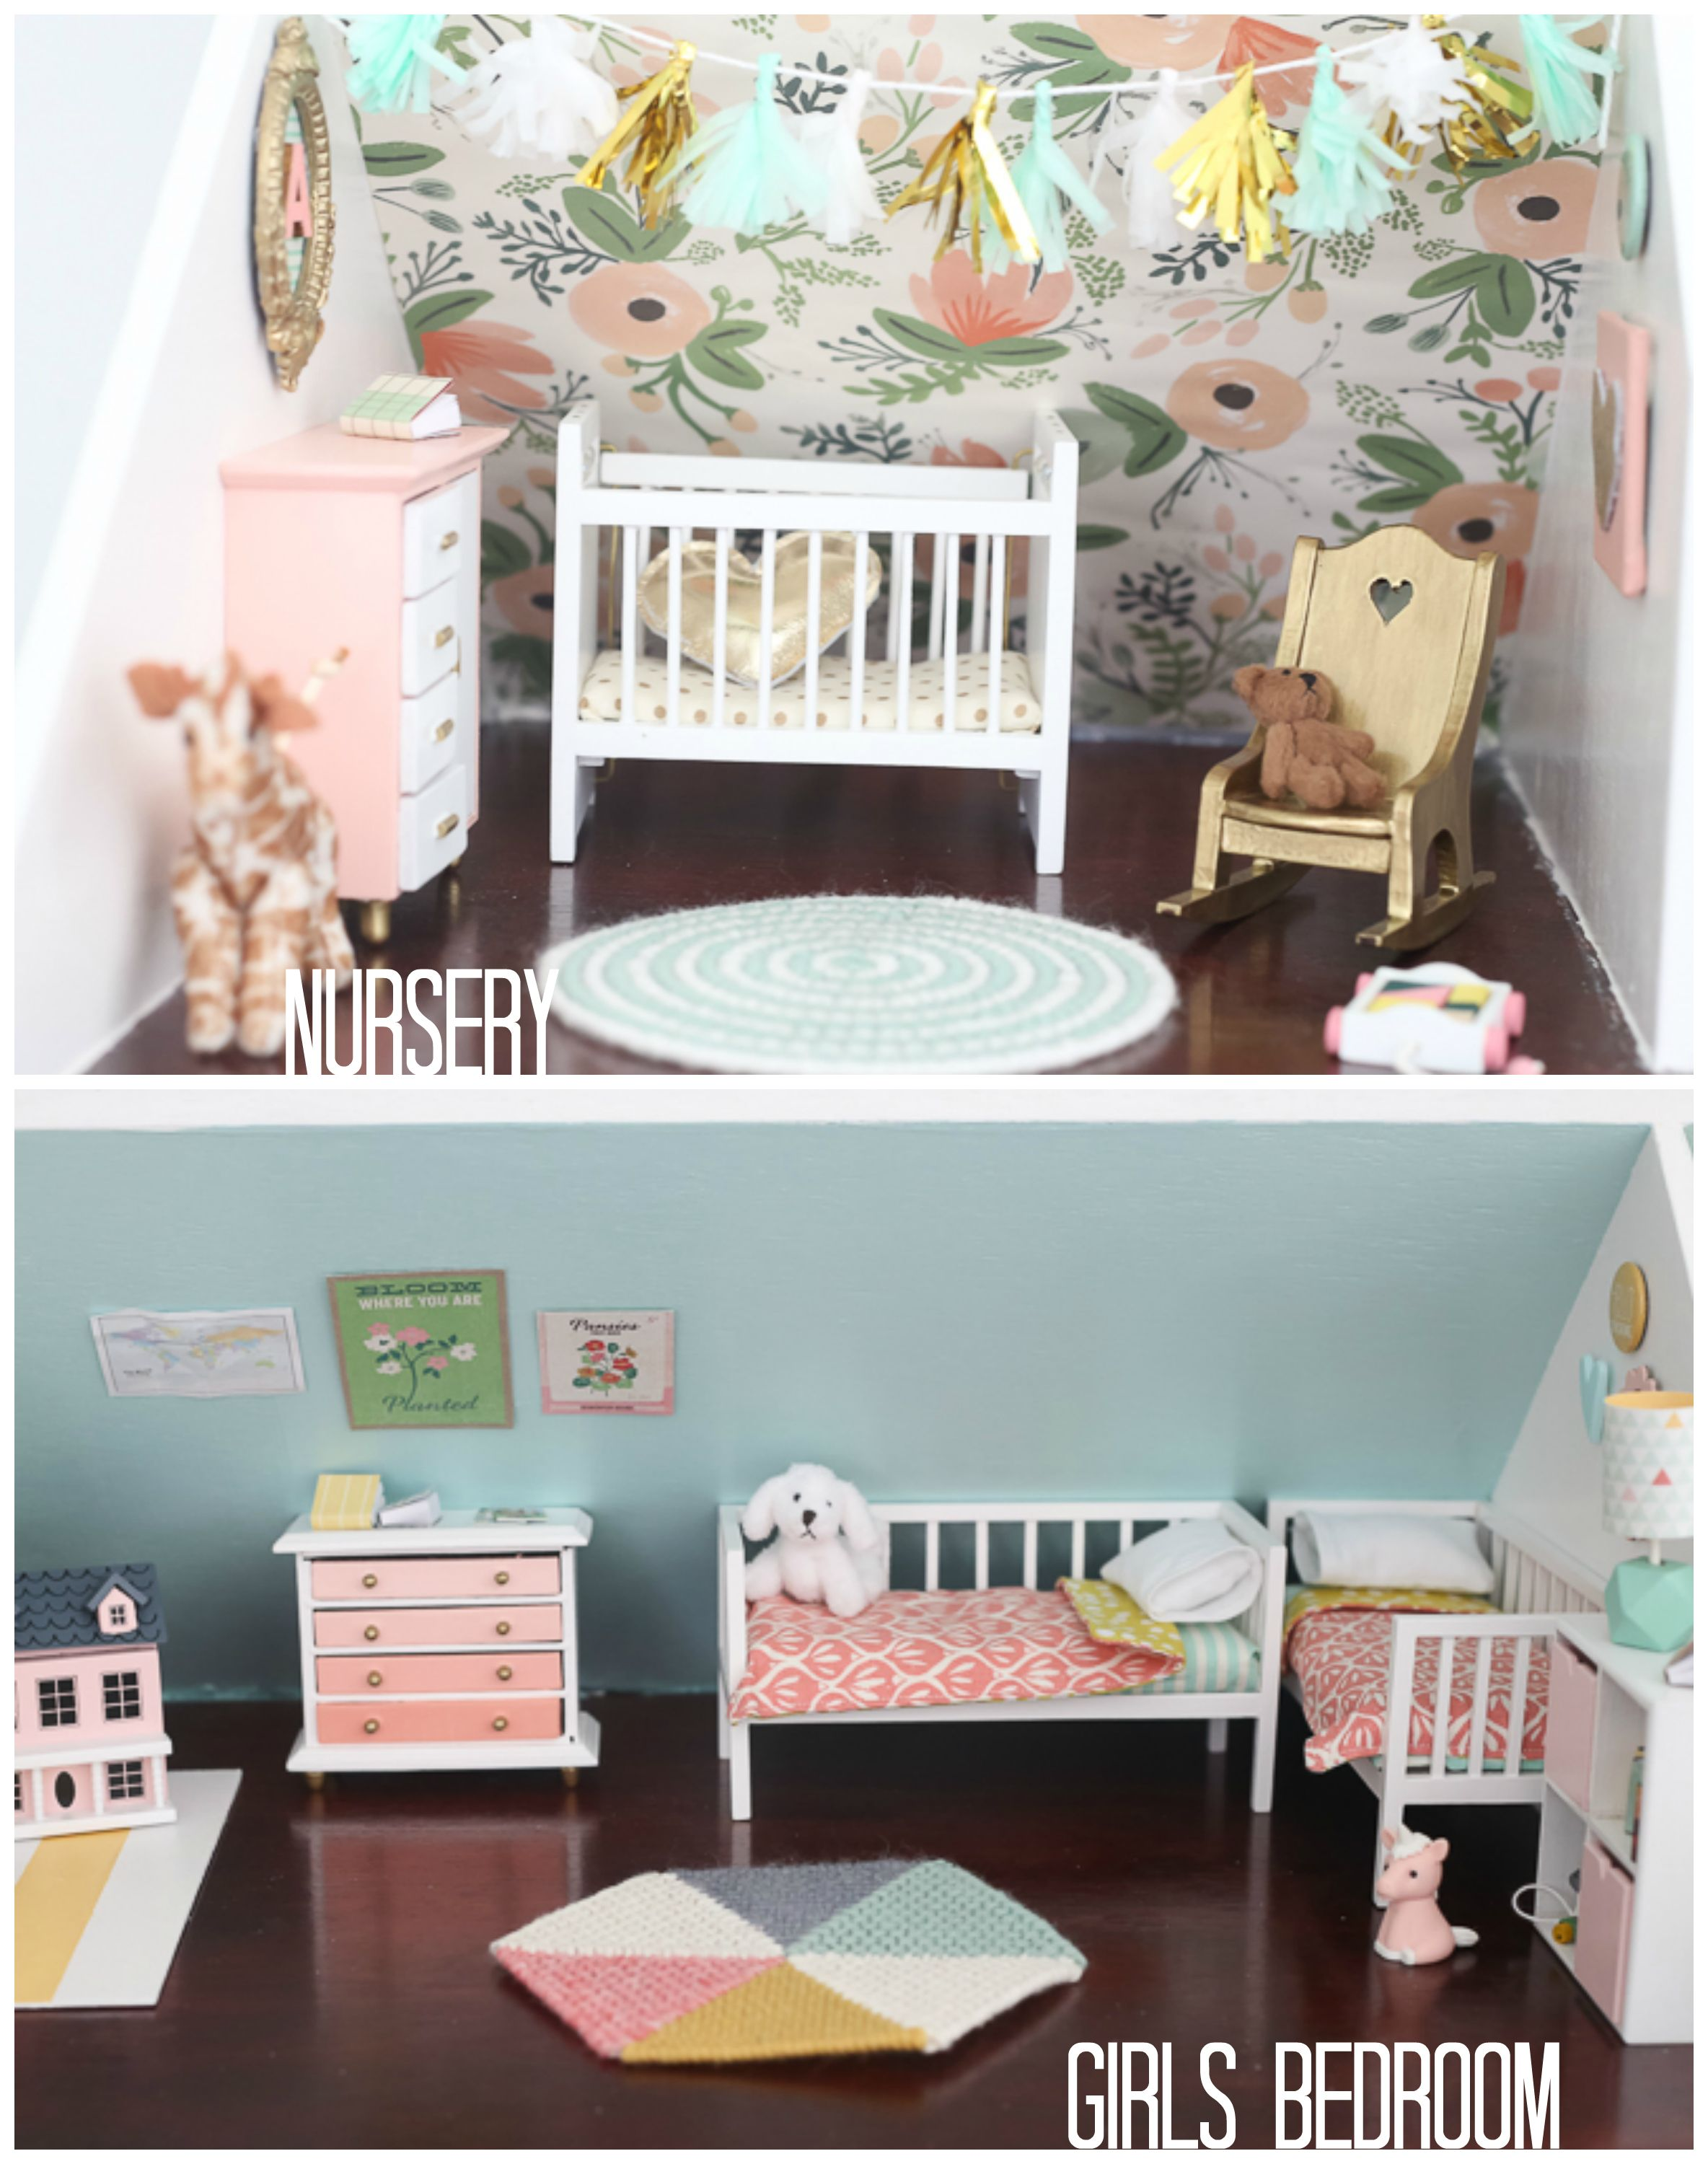 DIY DOLLHOUSE: THE GIRLS BEDROOM AND NURSERY | baby dolls and ...